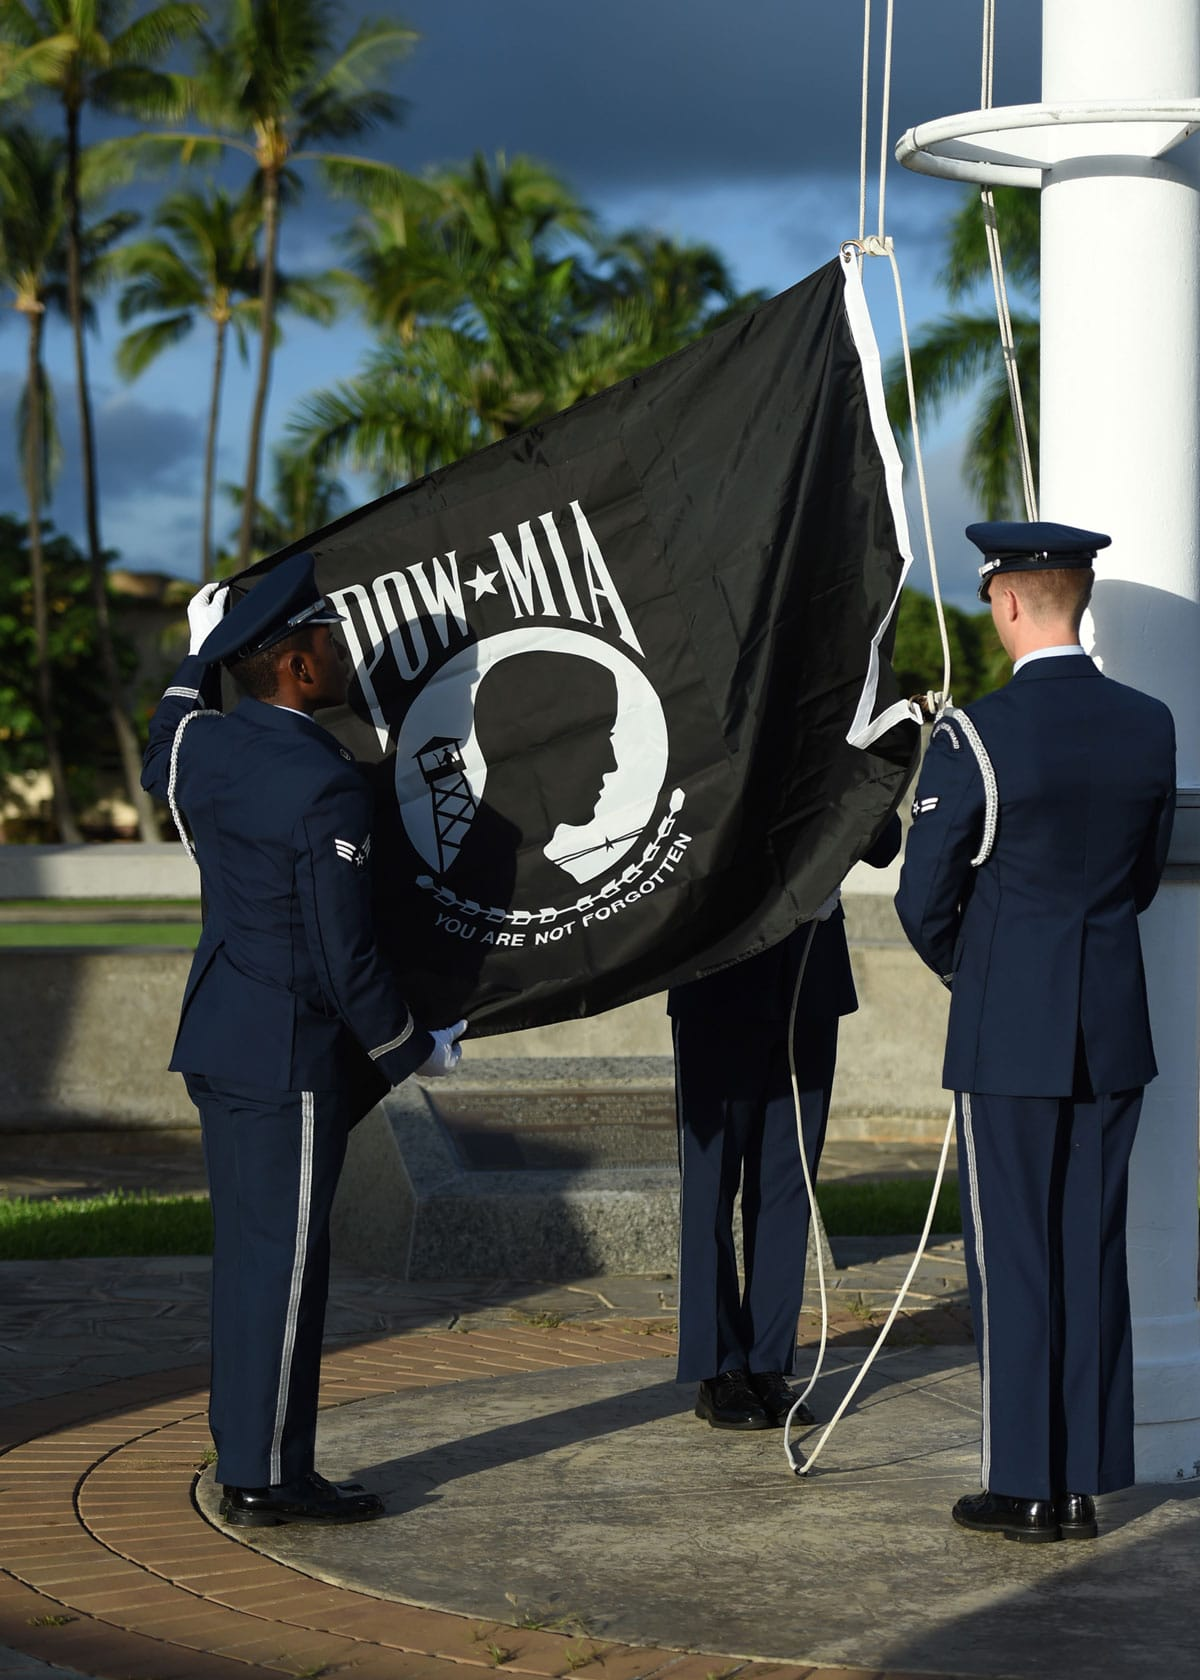 USAF Airmen From Joint Base Pearl Harbor-Hickam's Honor Guard raise the POW-MIA flag during a POW/MIA reveille ceremony, held on JBPHH, Hawaii. The ceremony started this year's POW-MIA week, which honors the 82,473 missing or unaccounted for military members in all branches of armed services.